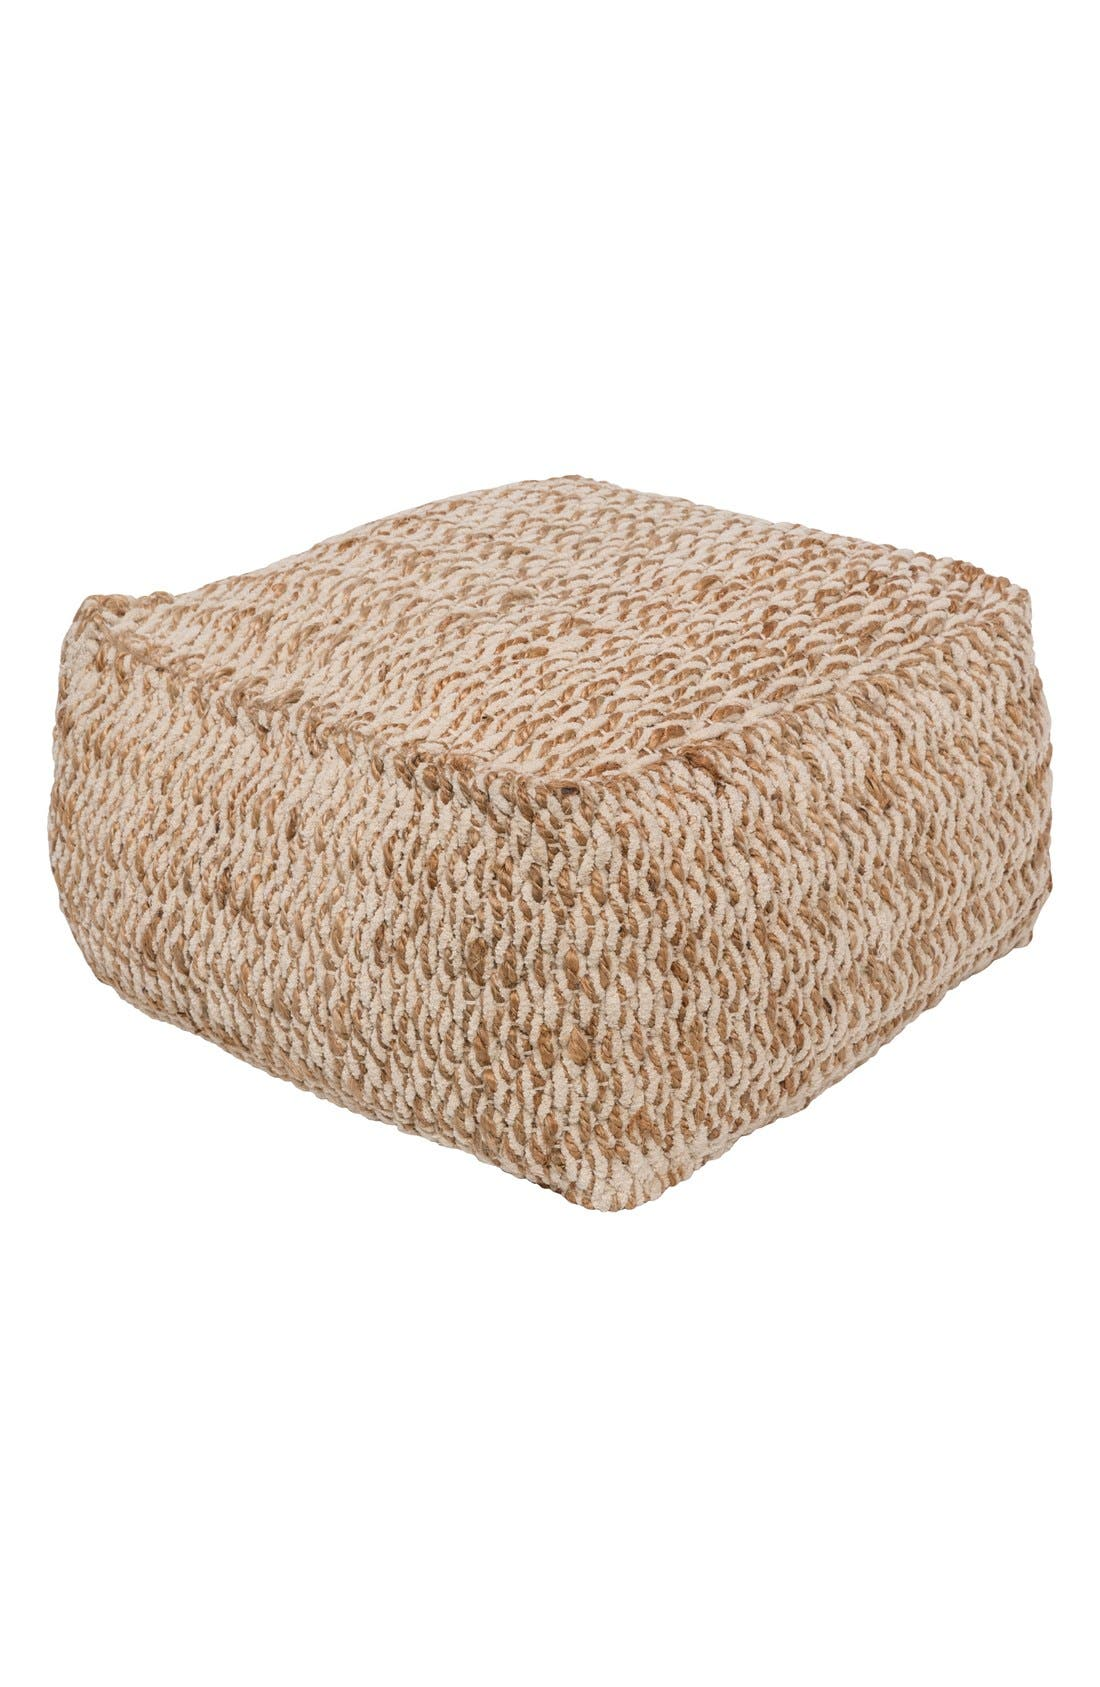 'Oak Cove' Jute & Cotton Pouf,                             Main thumbnail 1, color,                             250